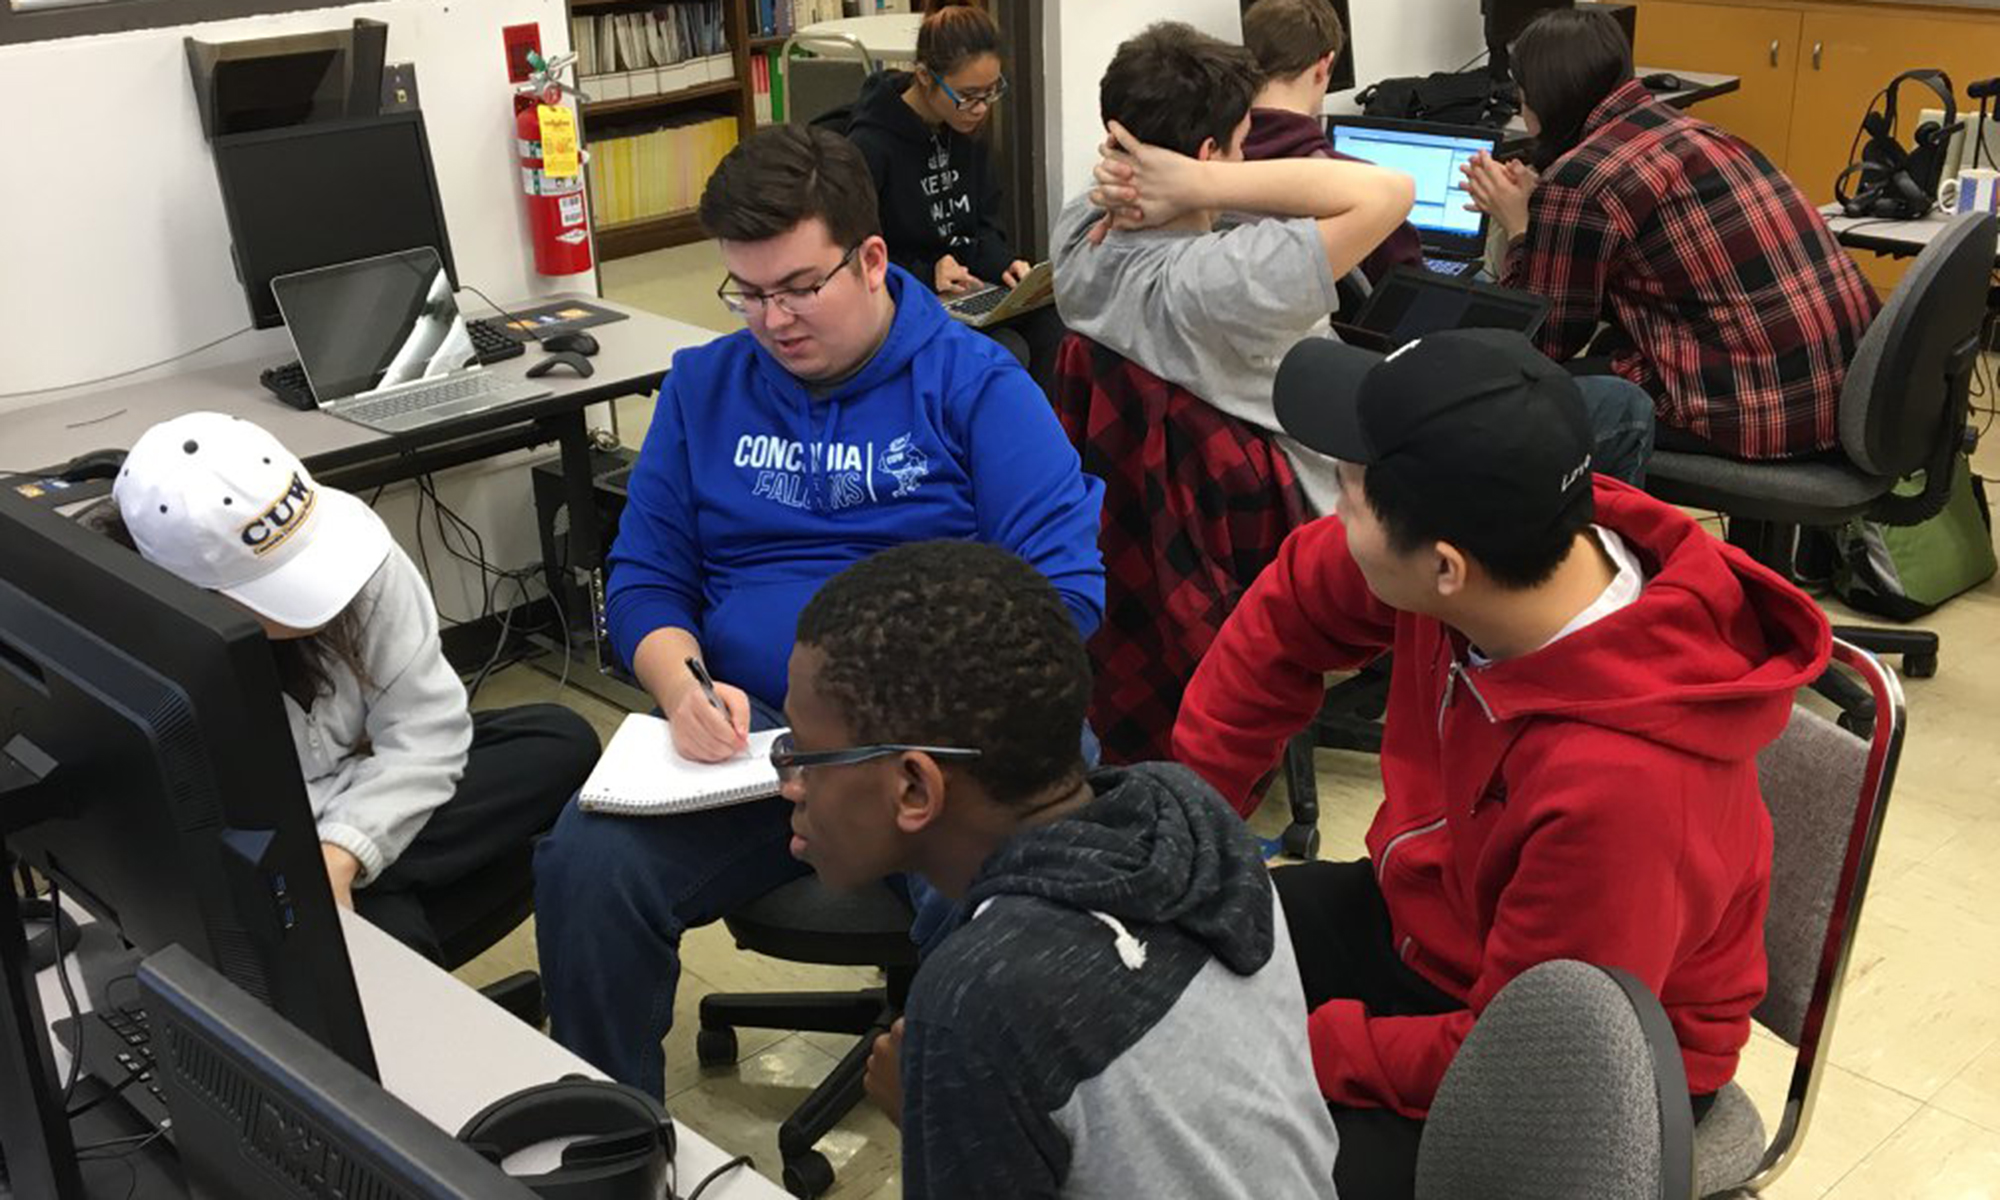 CUW students participate in the 4th annual hackathon.